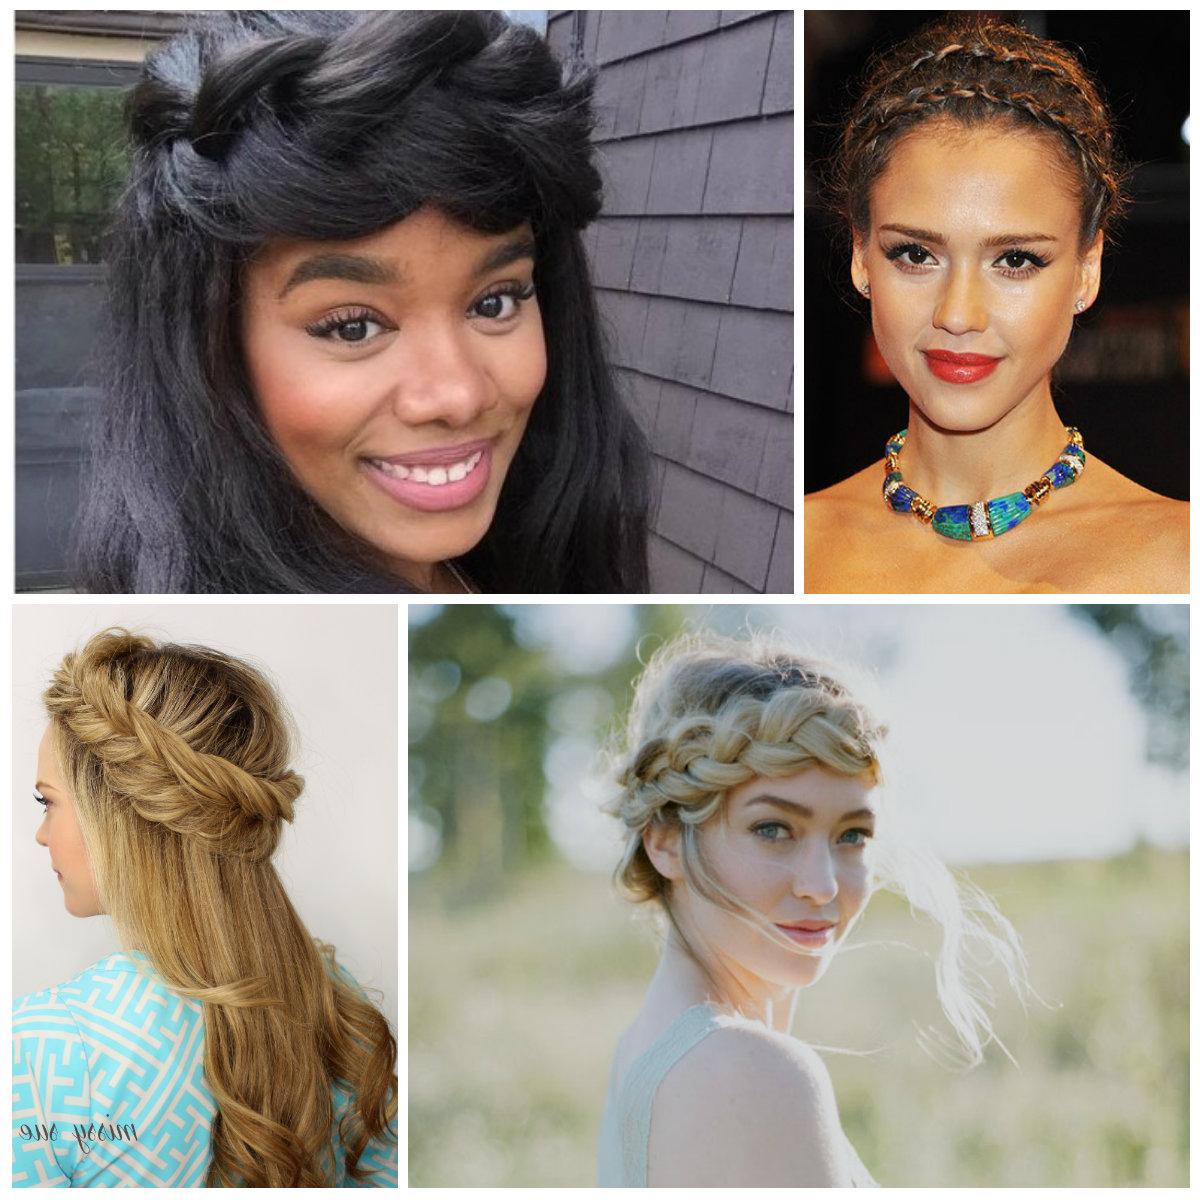 2020 Halo Braided Hairstyles With Long Tendrils For Angelic Halo Braids For Women For (View 4 of 20)